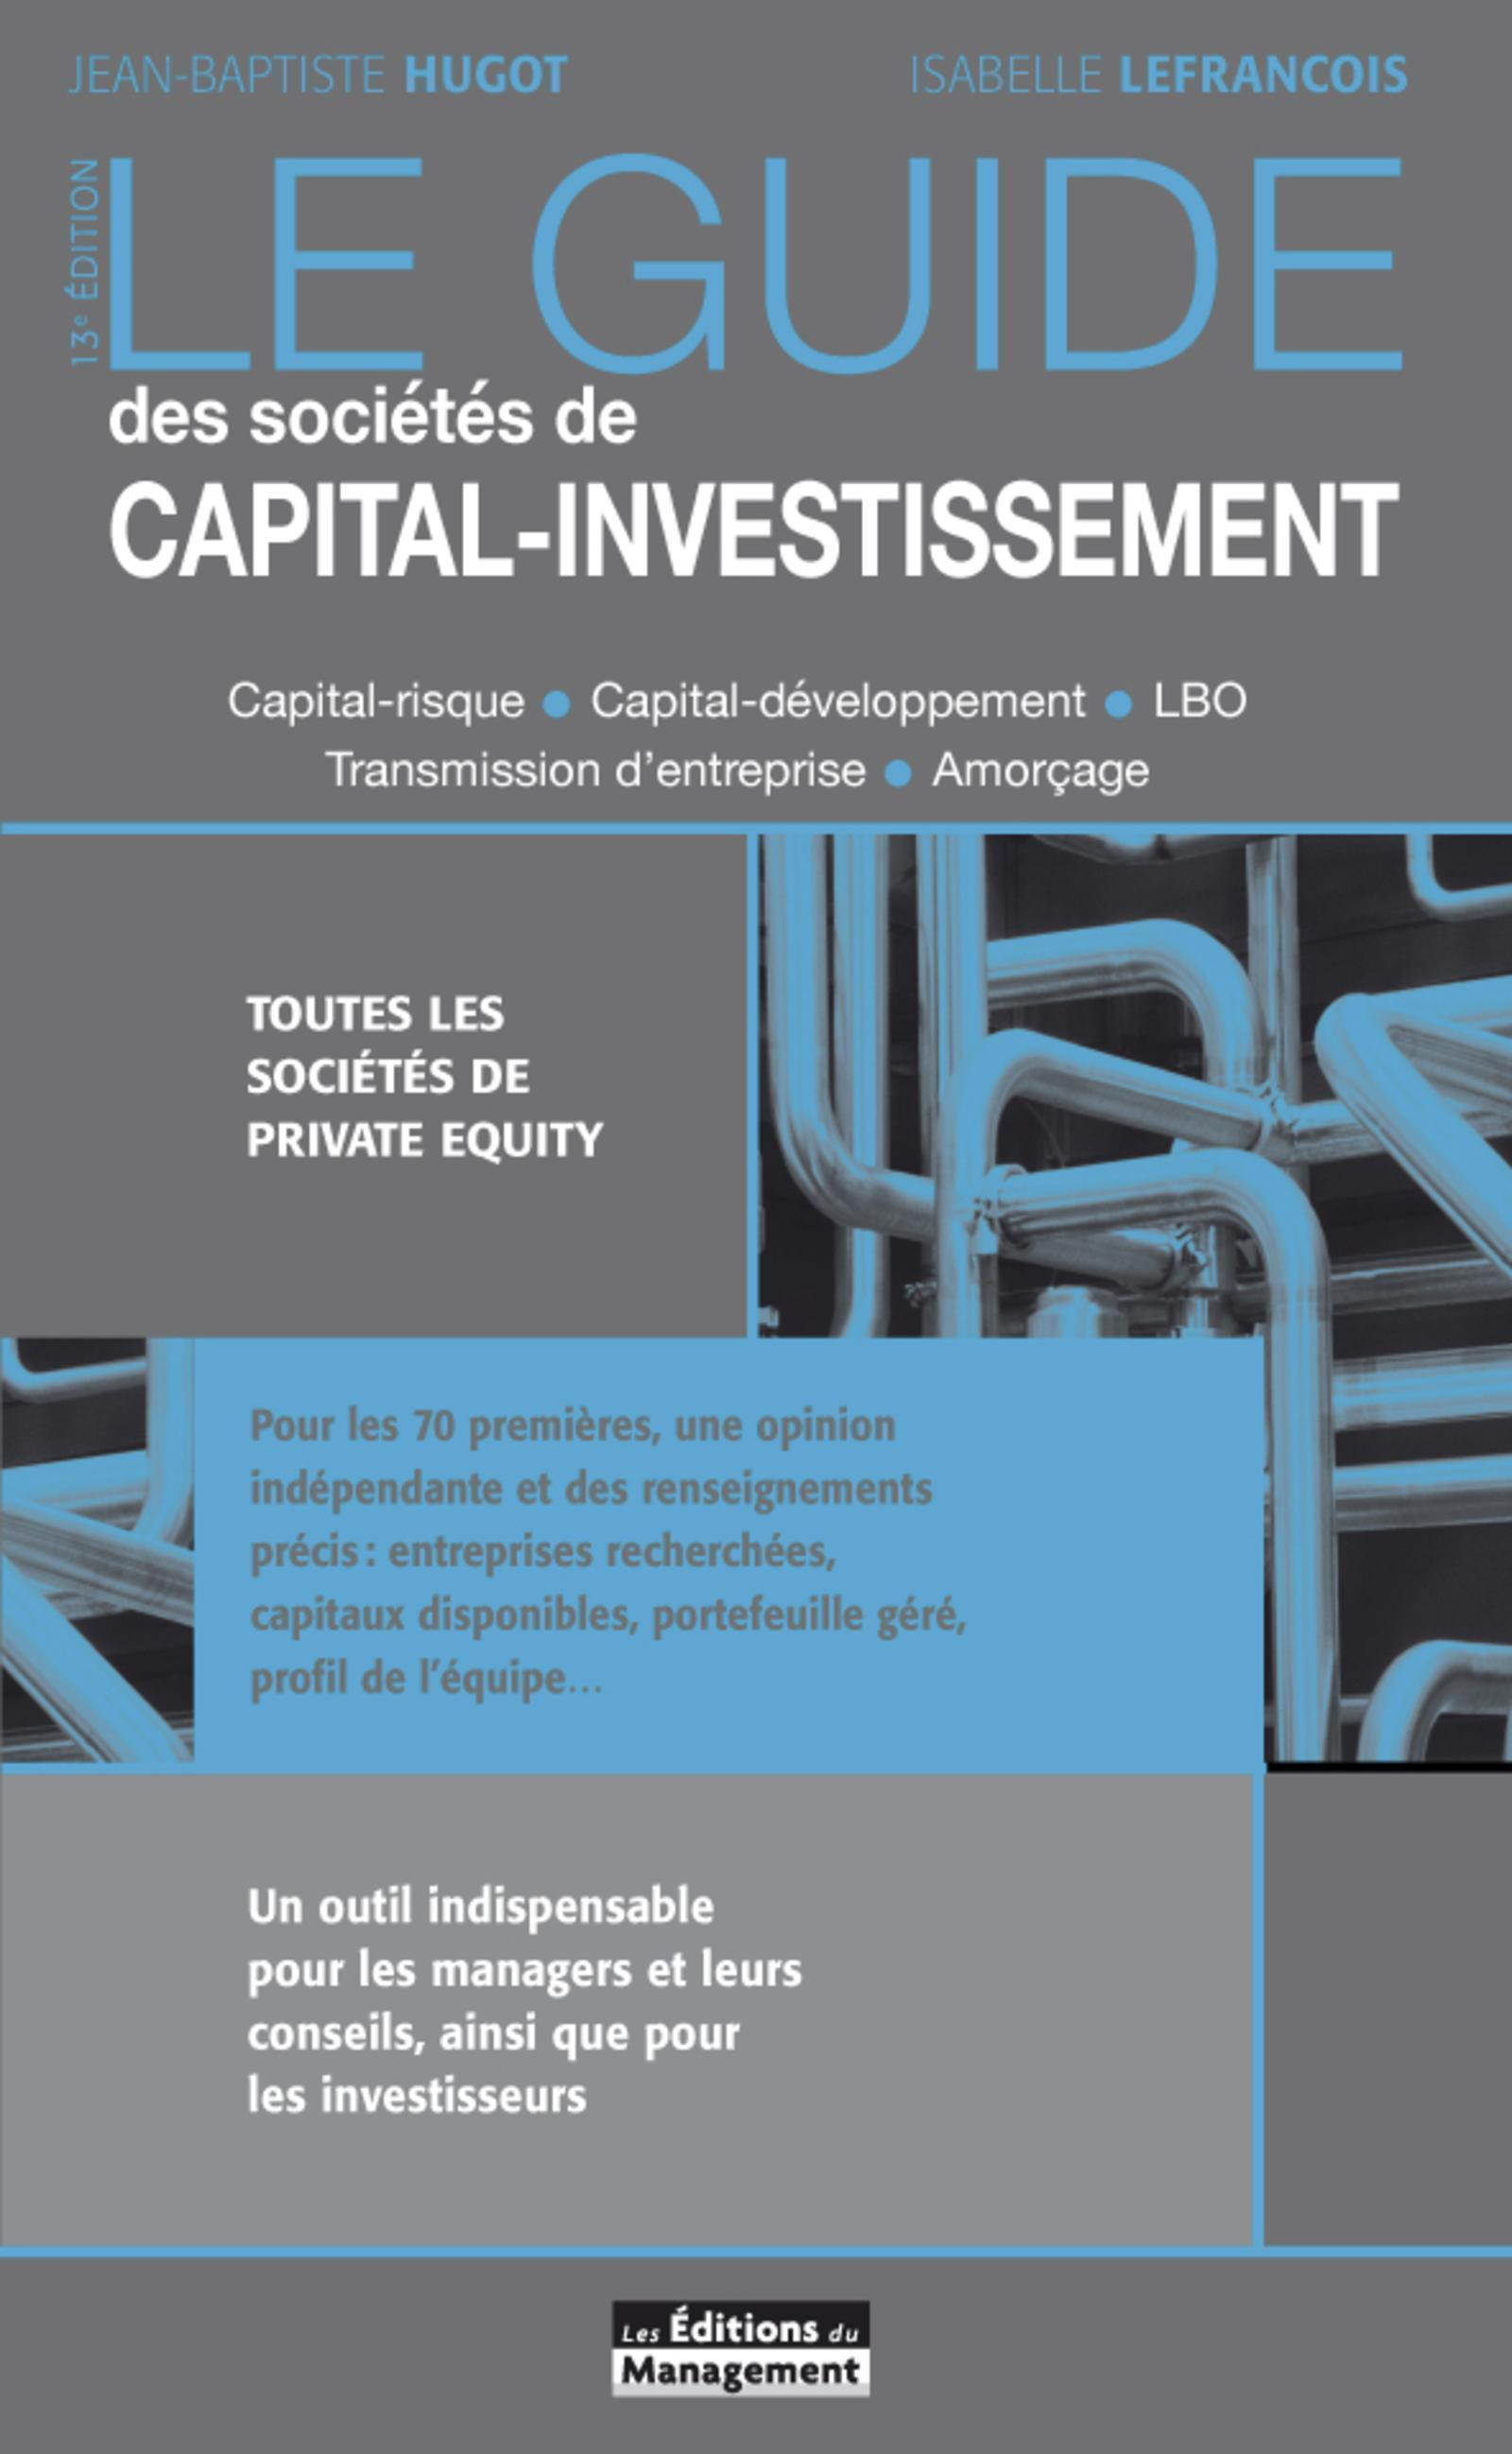 LE GUIDE DES SOCIETES DE CAPITAL-INVESTISSEMENT - TOUTES LES SOCIETES DE PRIVATE EQUITY